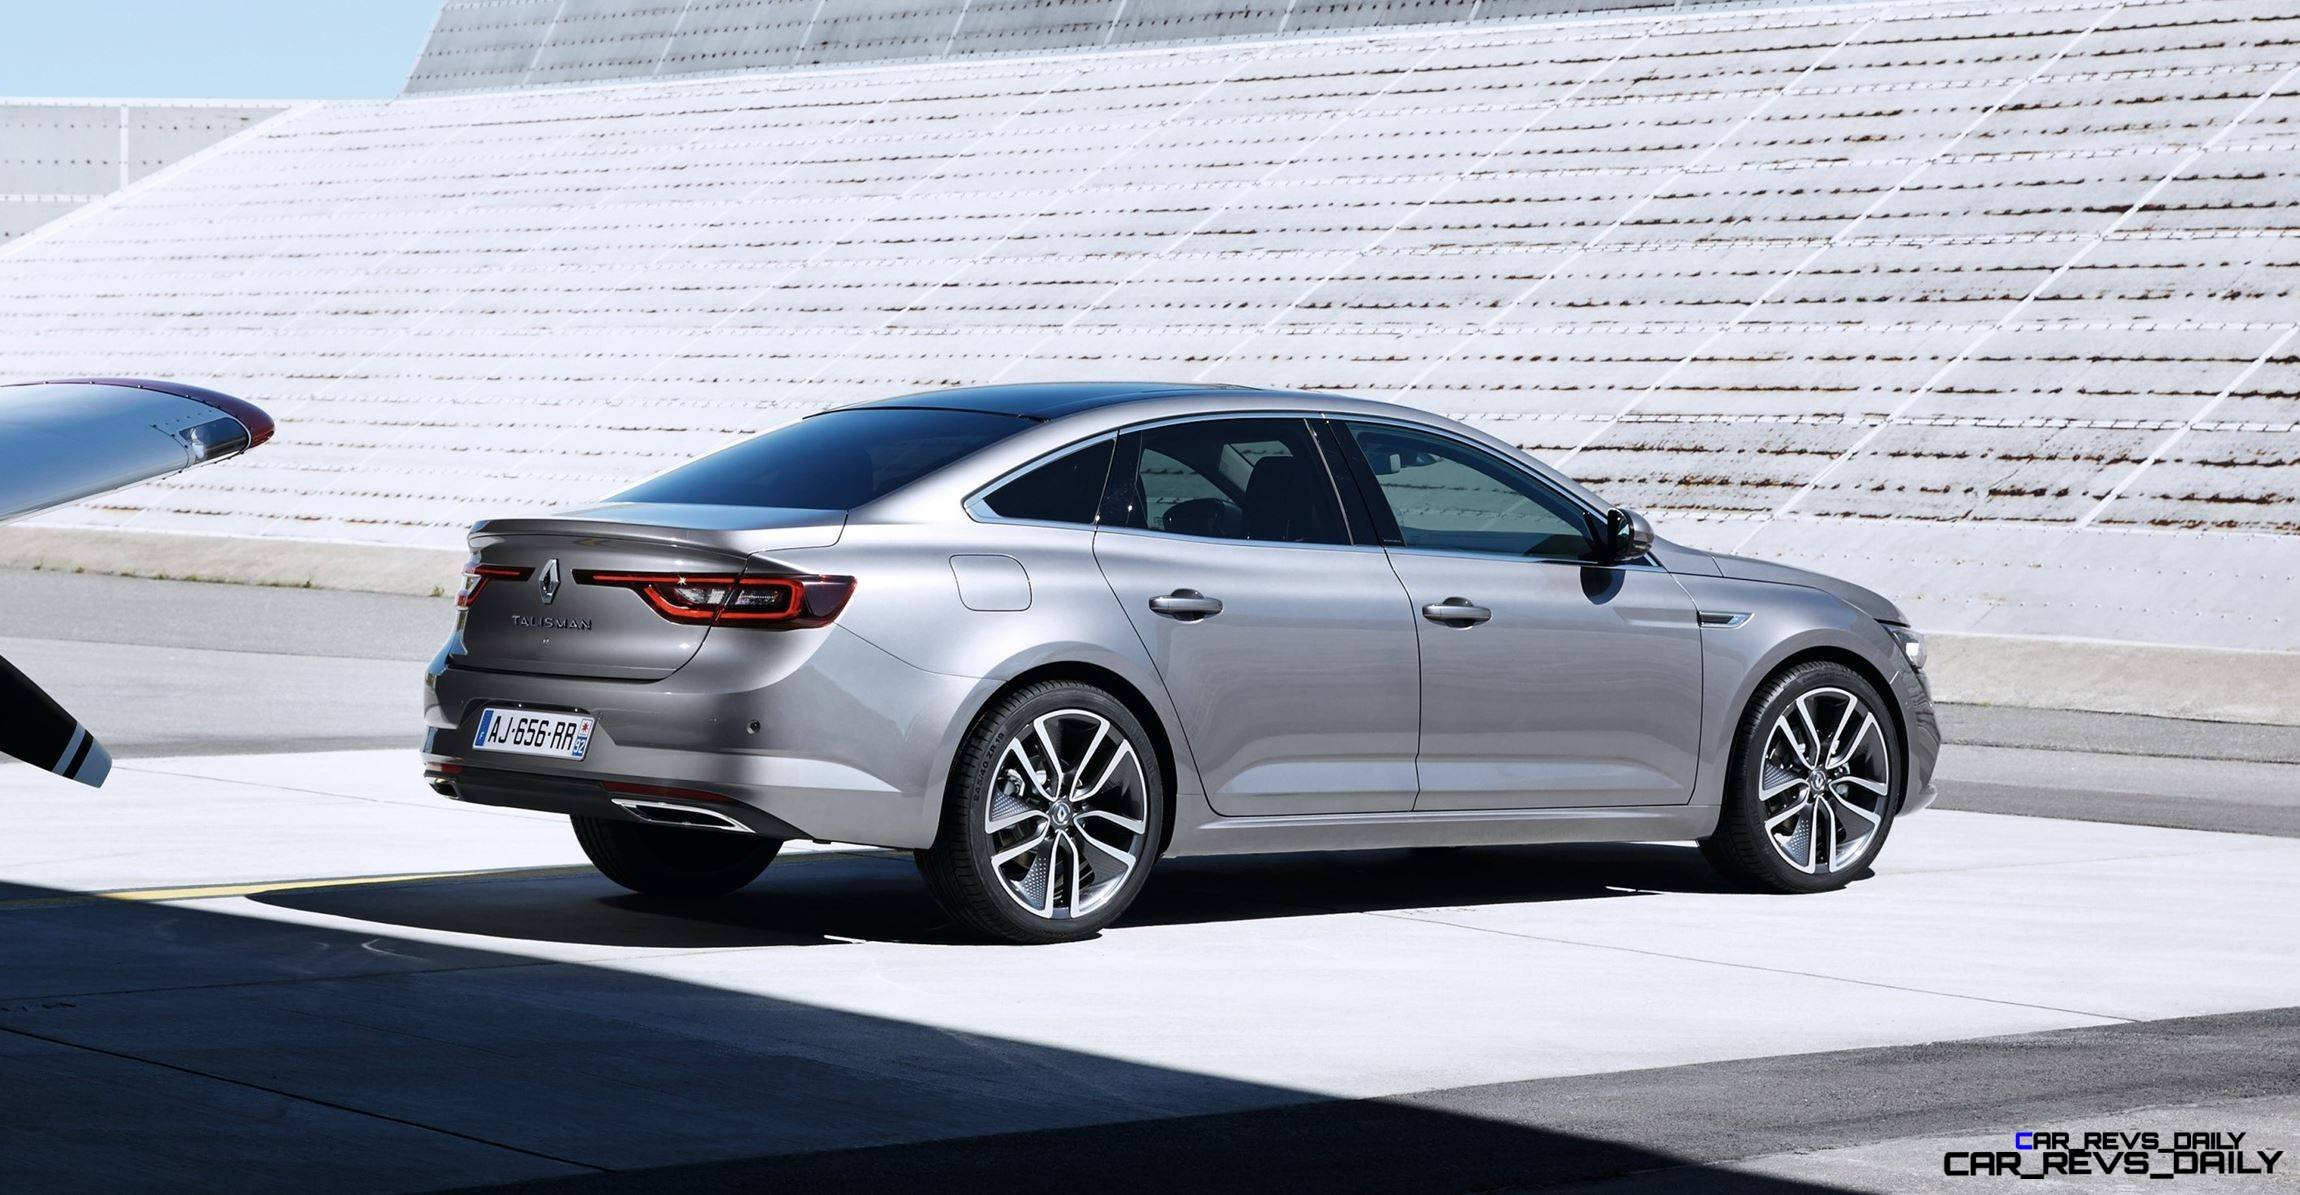 2016 renault talisman is all new french flagship saloon car revs. Black Bedroom Furniture Sets. Home Design Ideas